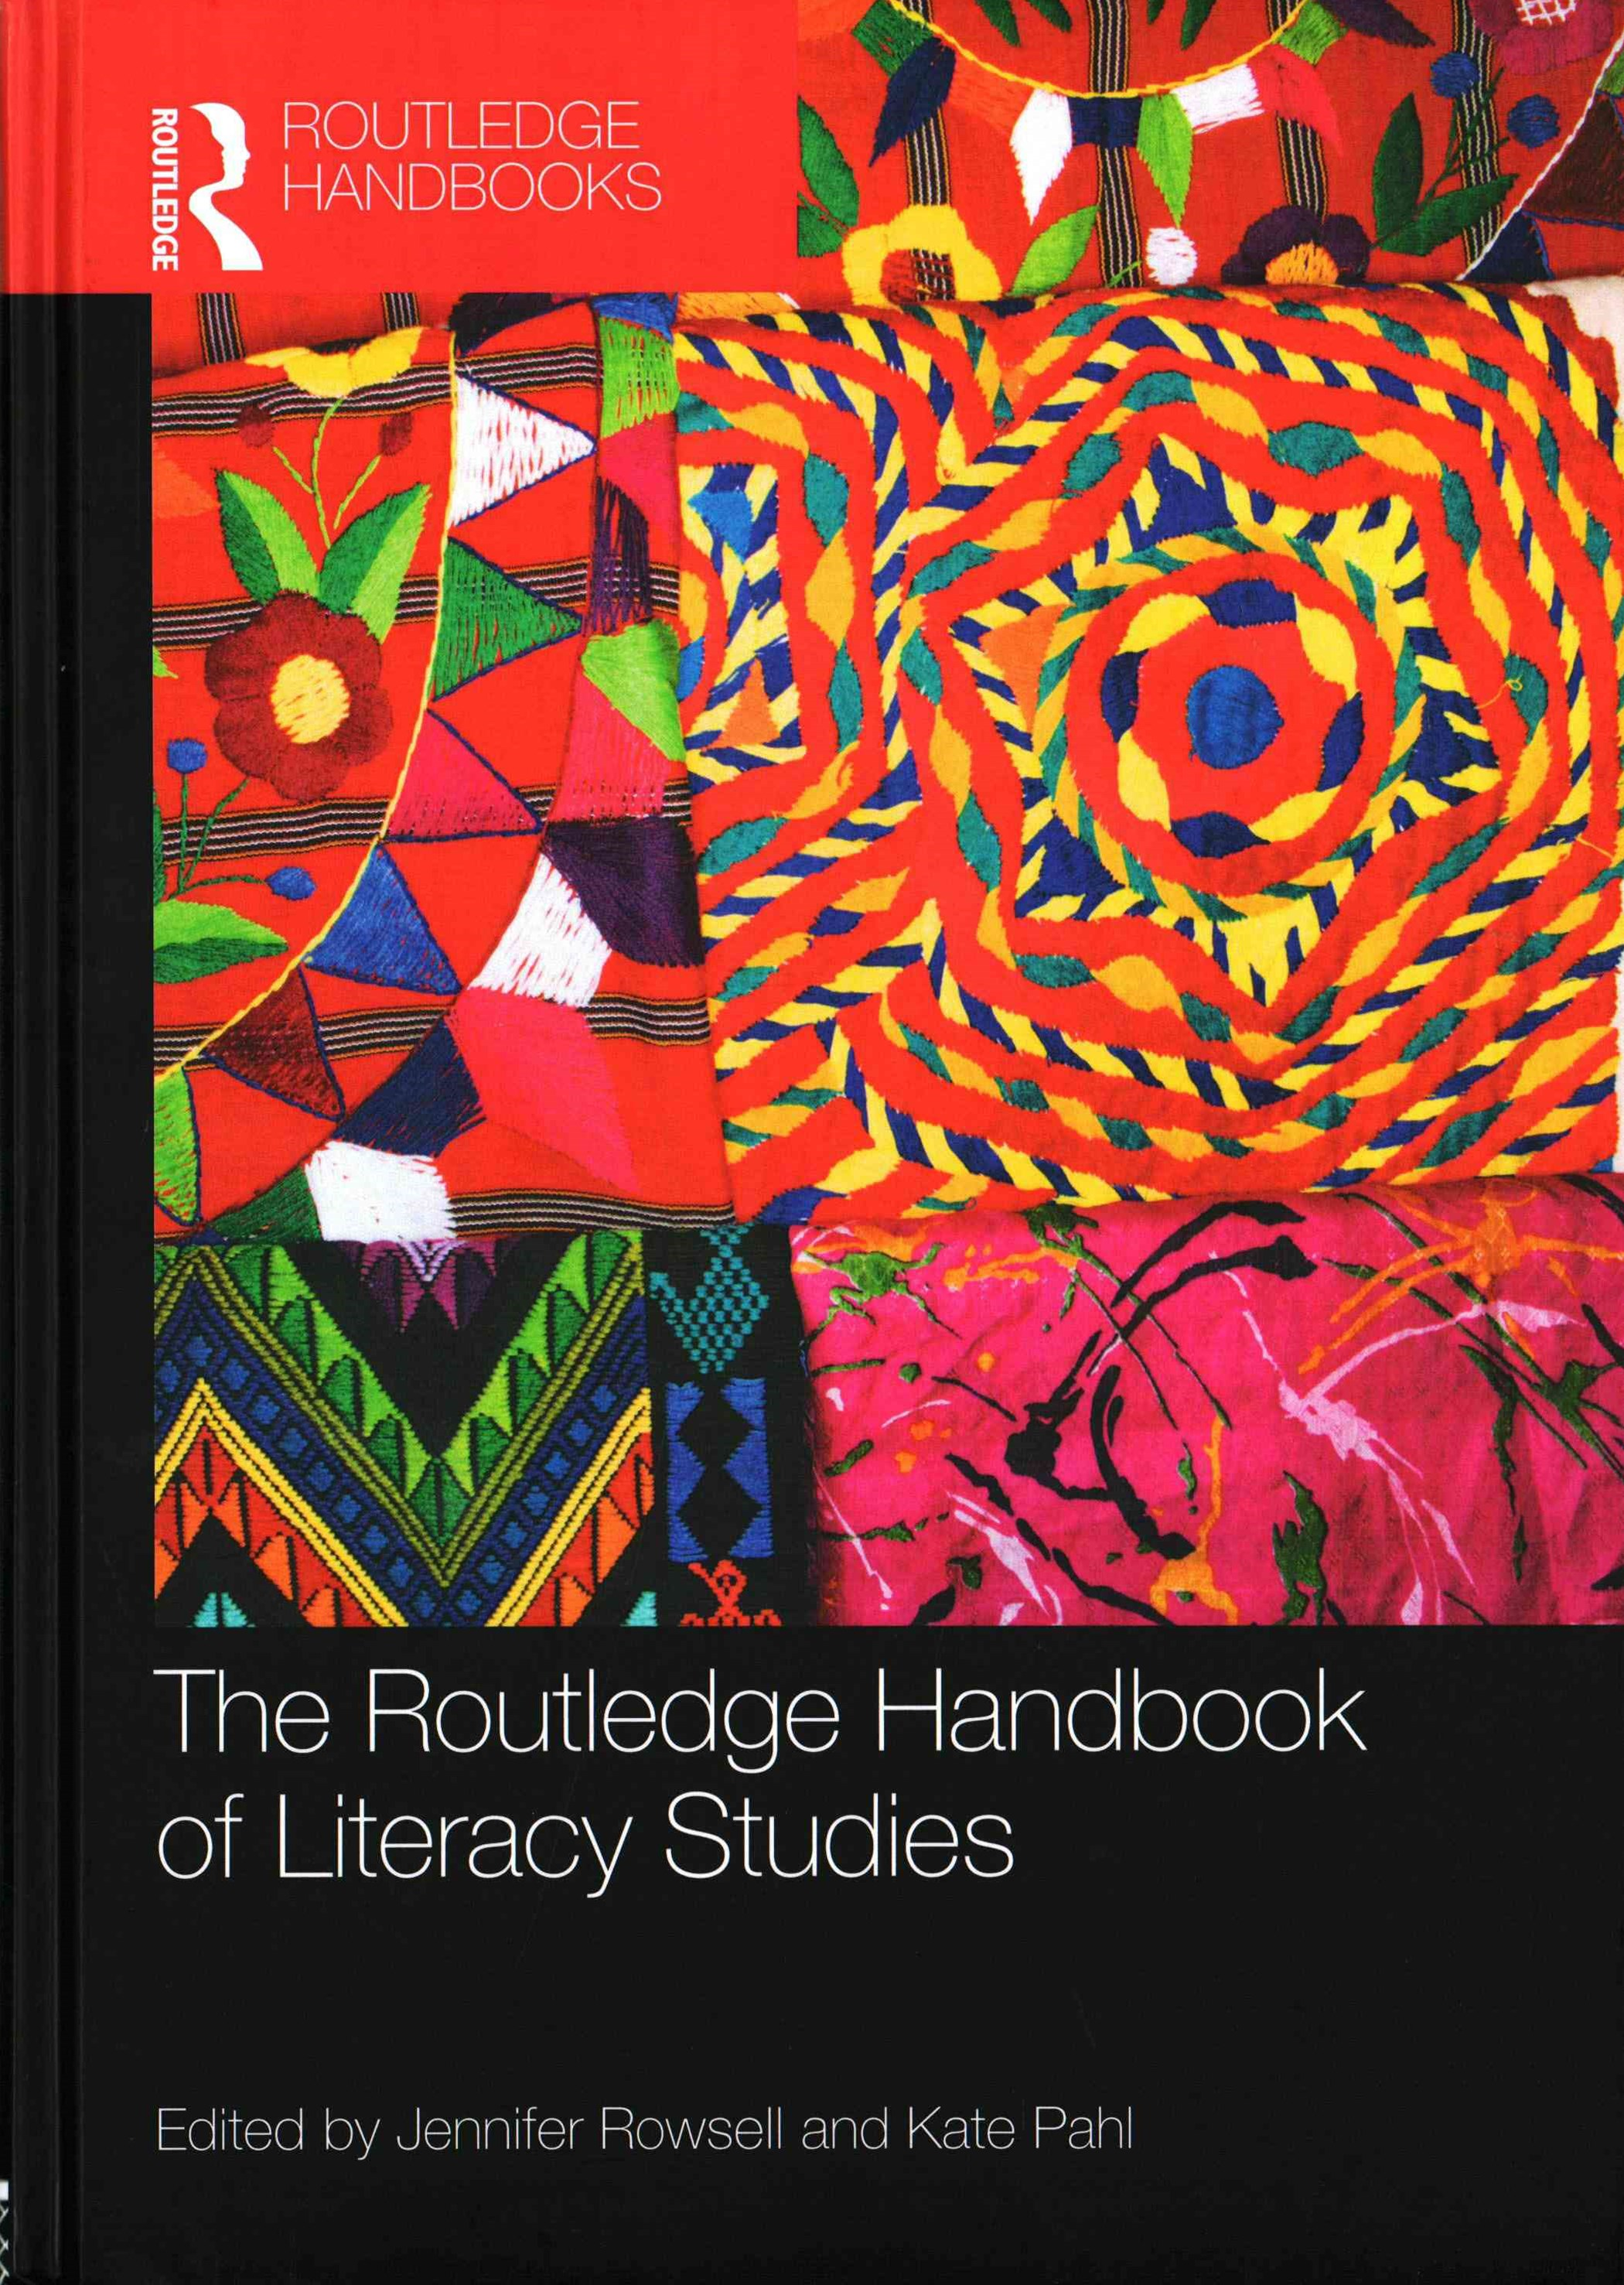 Routledge Handbook of Literacy Studies